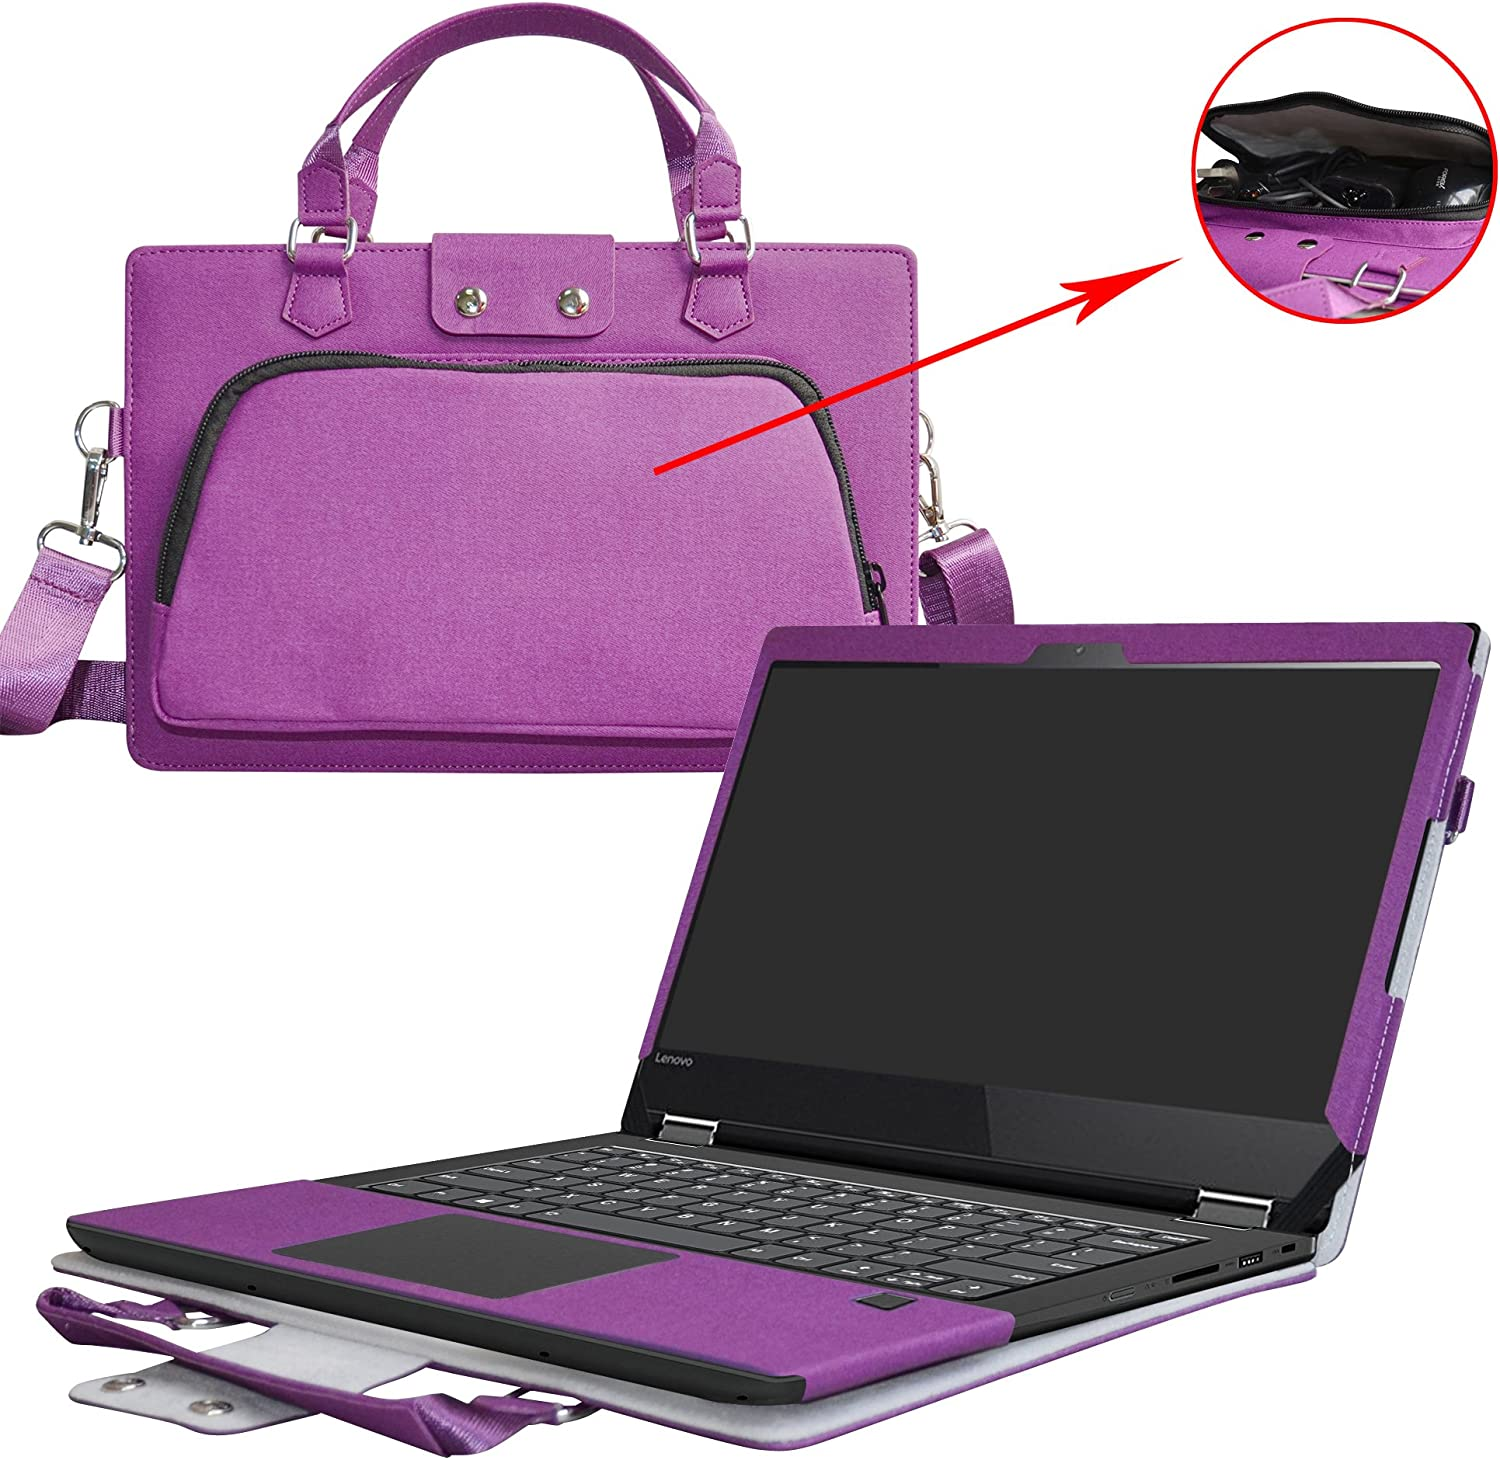 "Flex 5 15 Case,2 in 1 Accurately Designed Protective PU Leather Cover + Portable Carrying Bag for 15.6"" Lenovo Flex 5 15 1570 Series Laptop(Not Fit Flex 4/Flex 5 14),Purple"